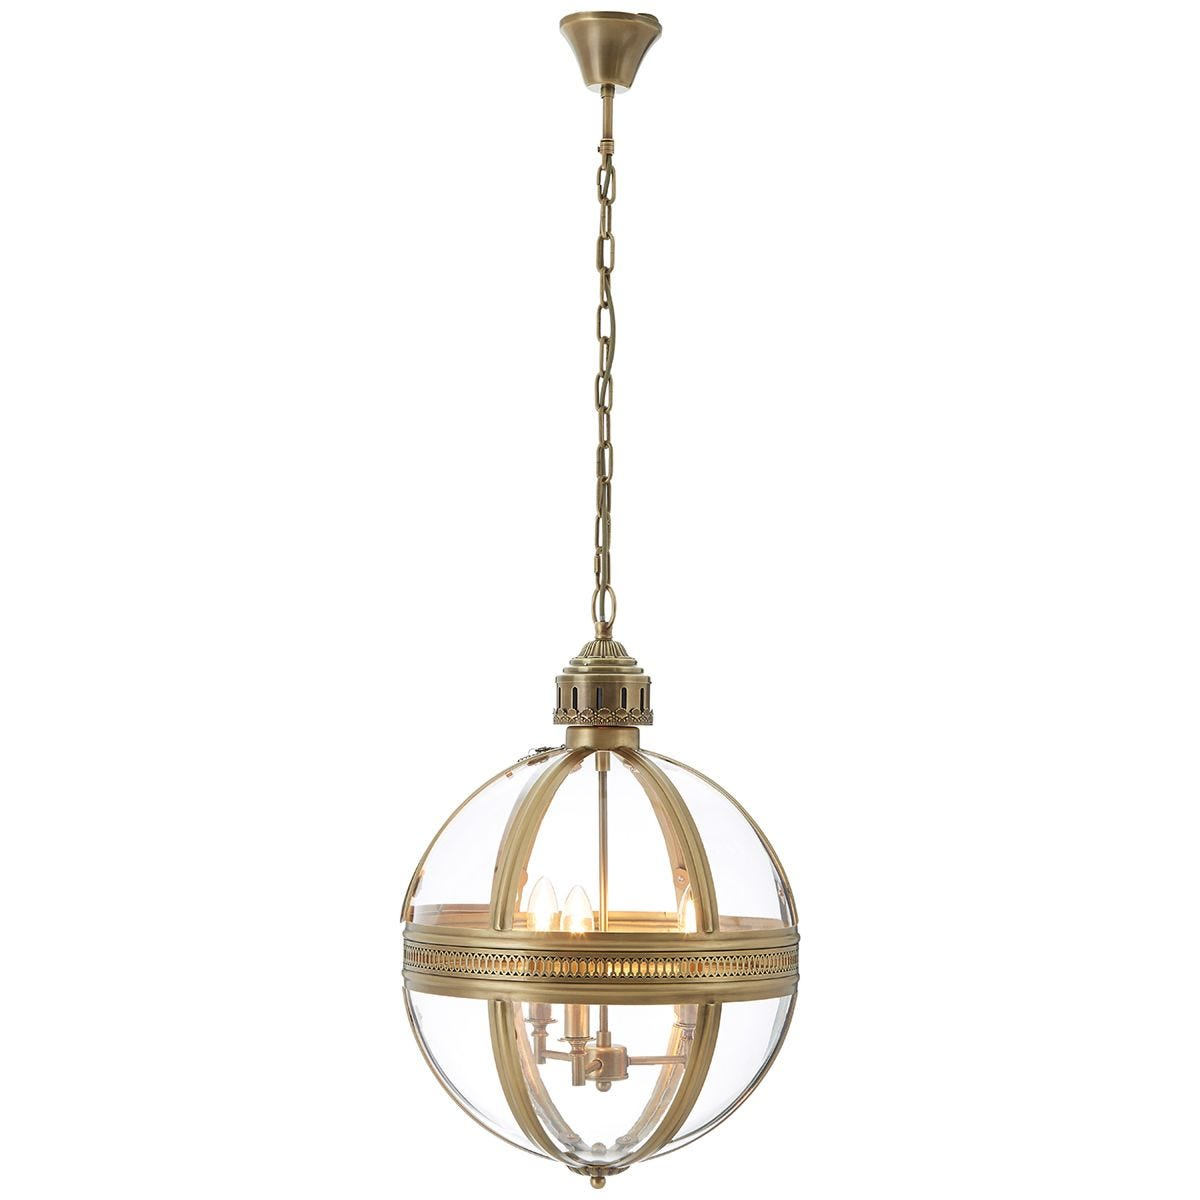 Premier Housewares Hampstead Pendant Light in Iron/Glass - Brass Finish